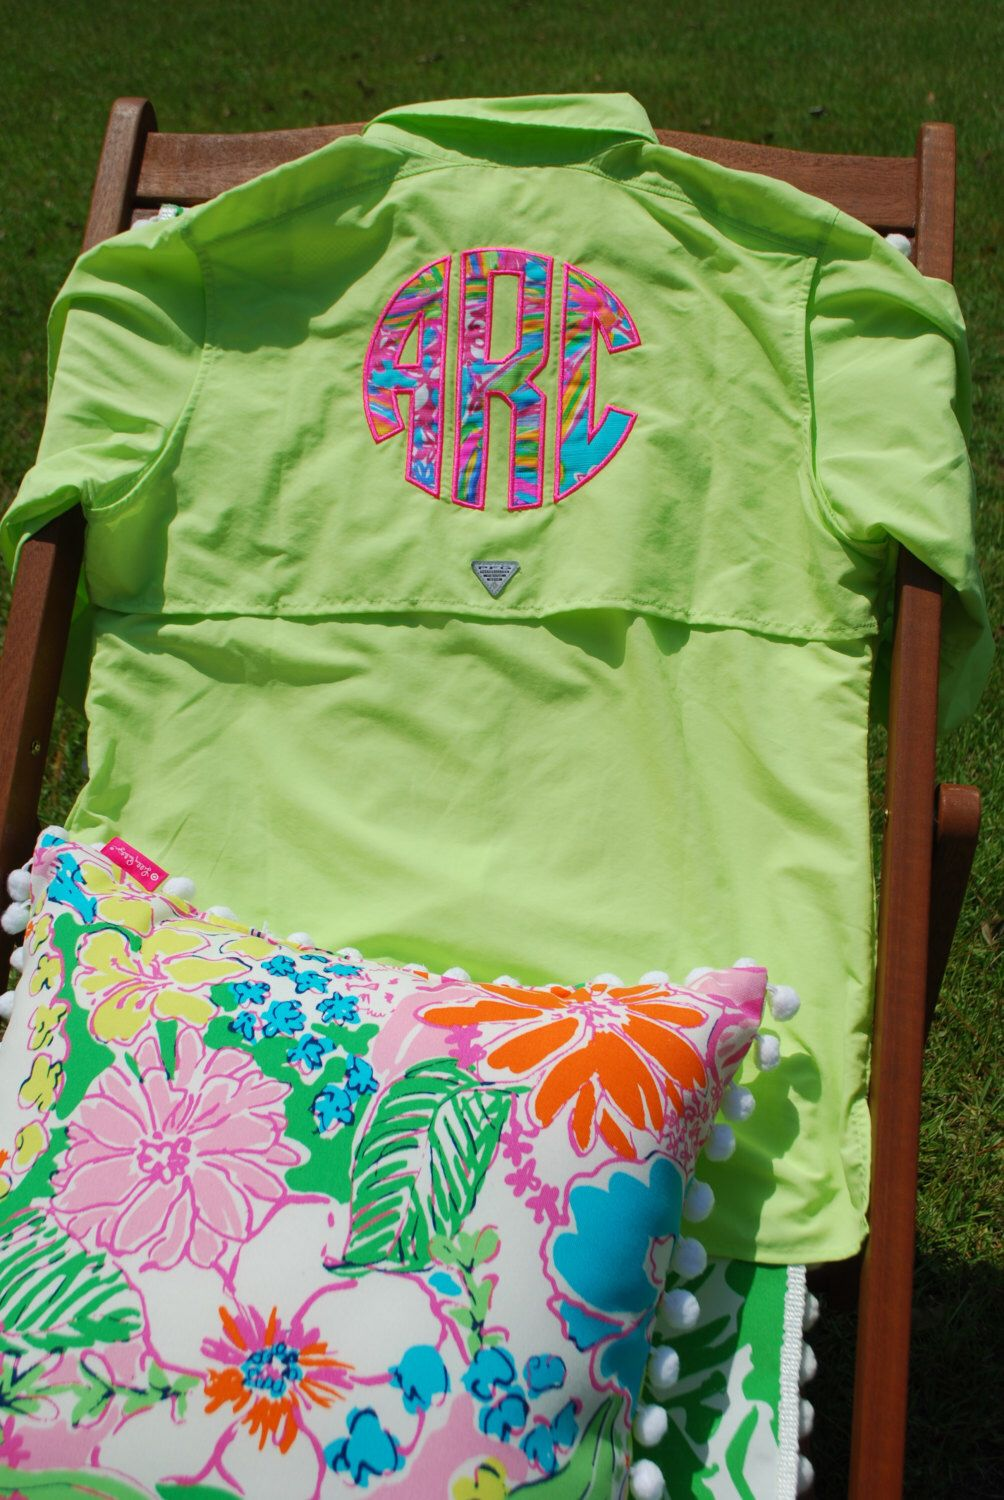 306f2e5a9be7e Beach Shirts · Embroidery Monogram · Swimsuit Cover · Vinyl Projects · A  personal favorite from my Etsy shop https://www.etsy.com